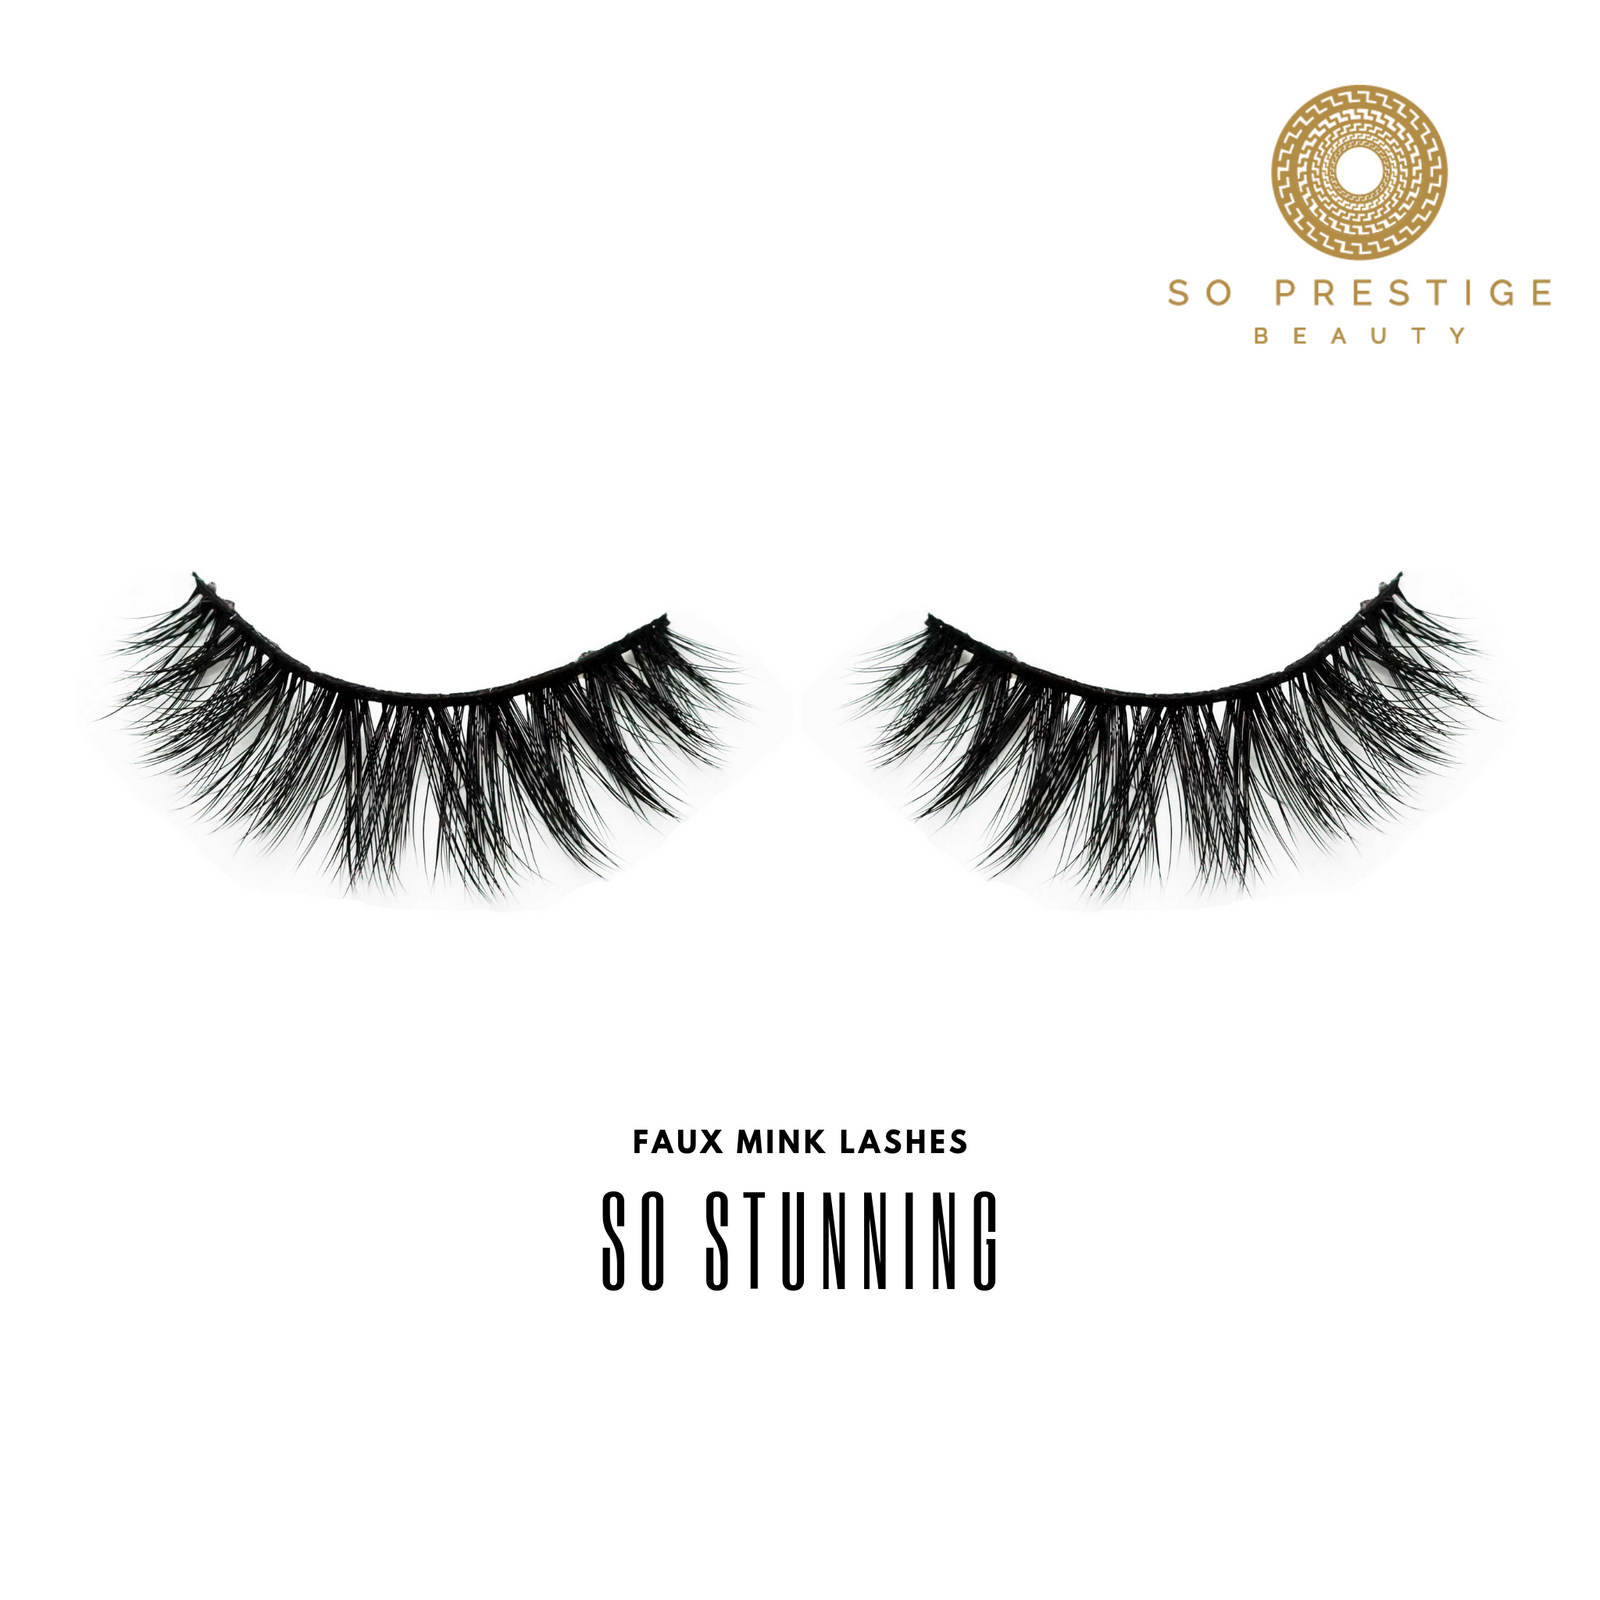 3D Faux Mink Eyelashes in the Style 'So Stunning ' by So Prestige Beauty